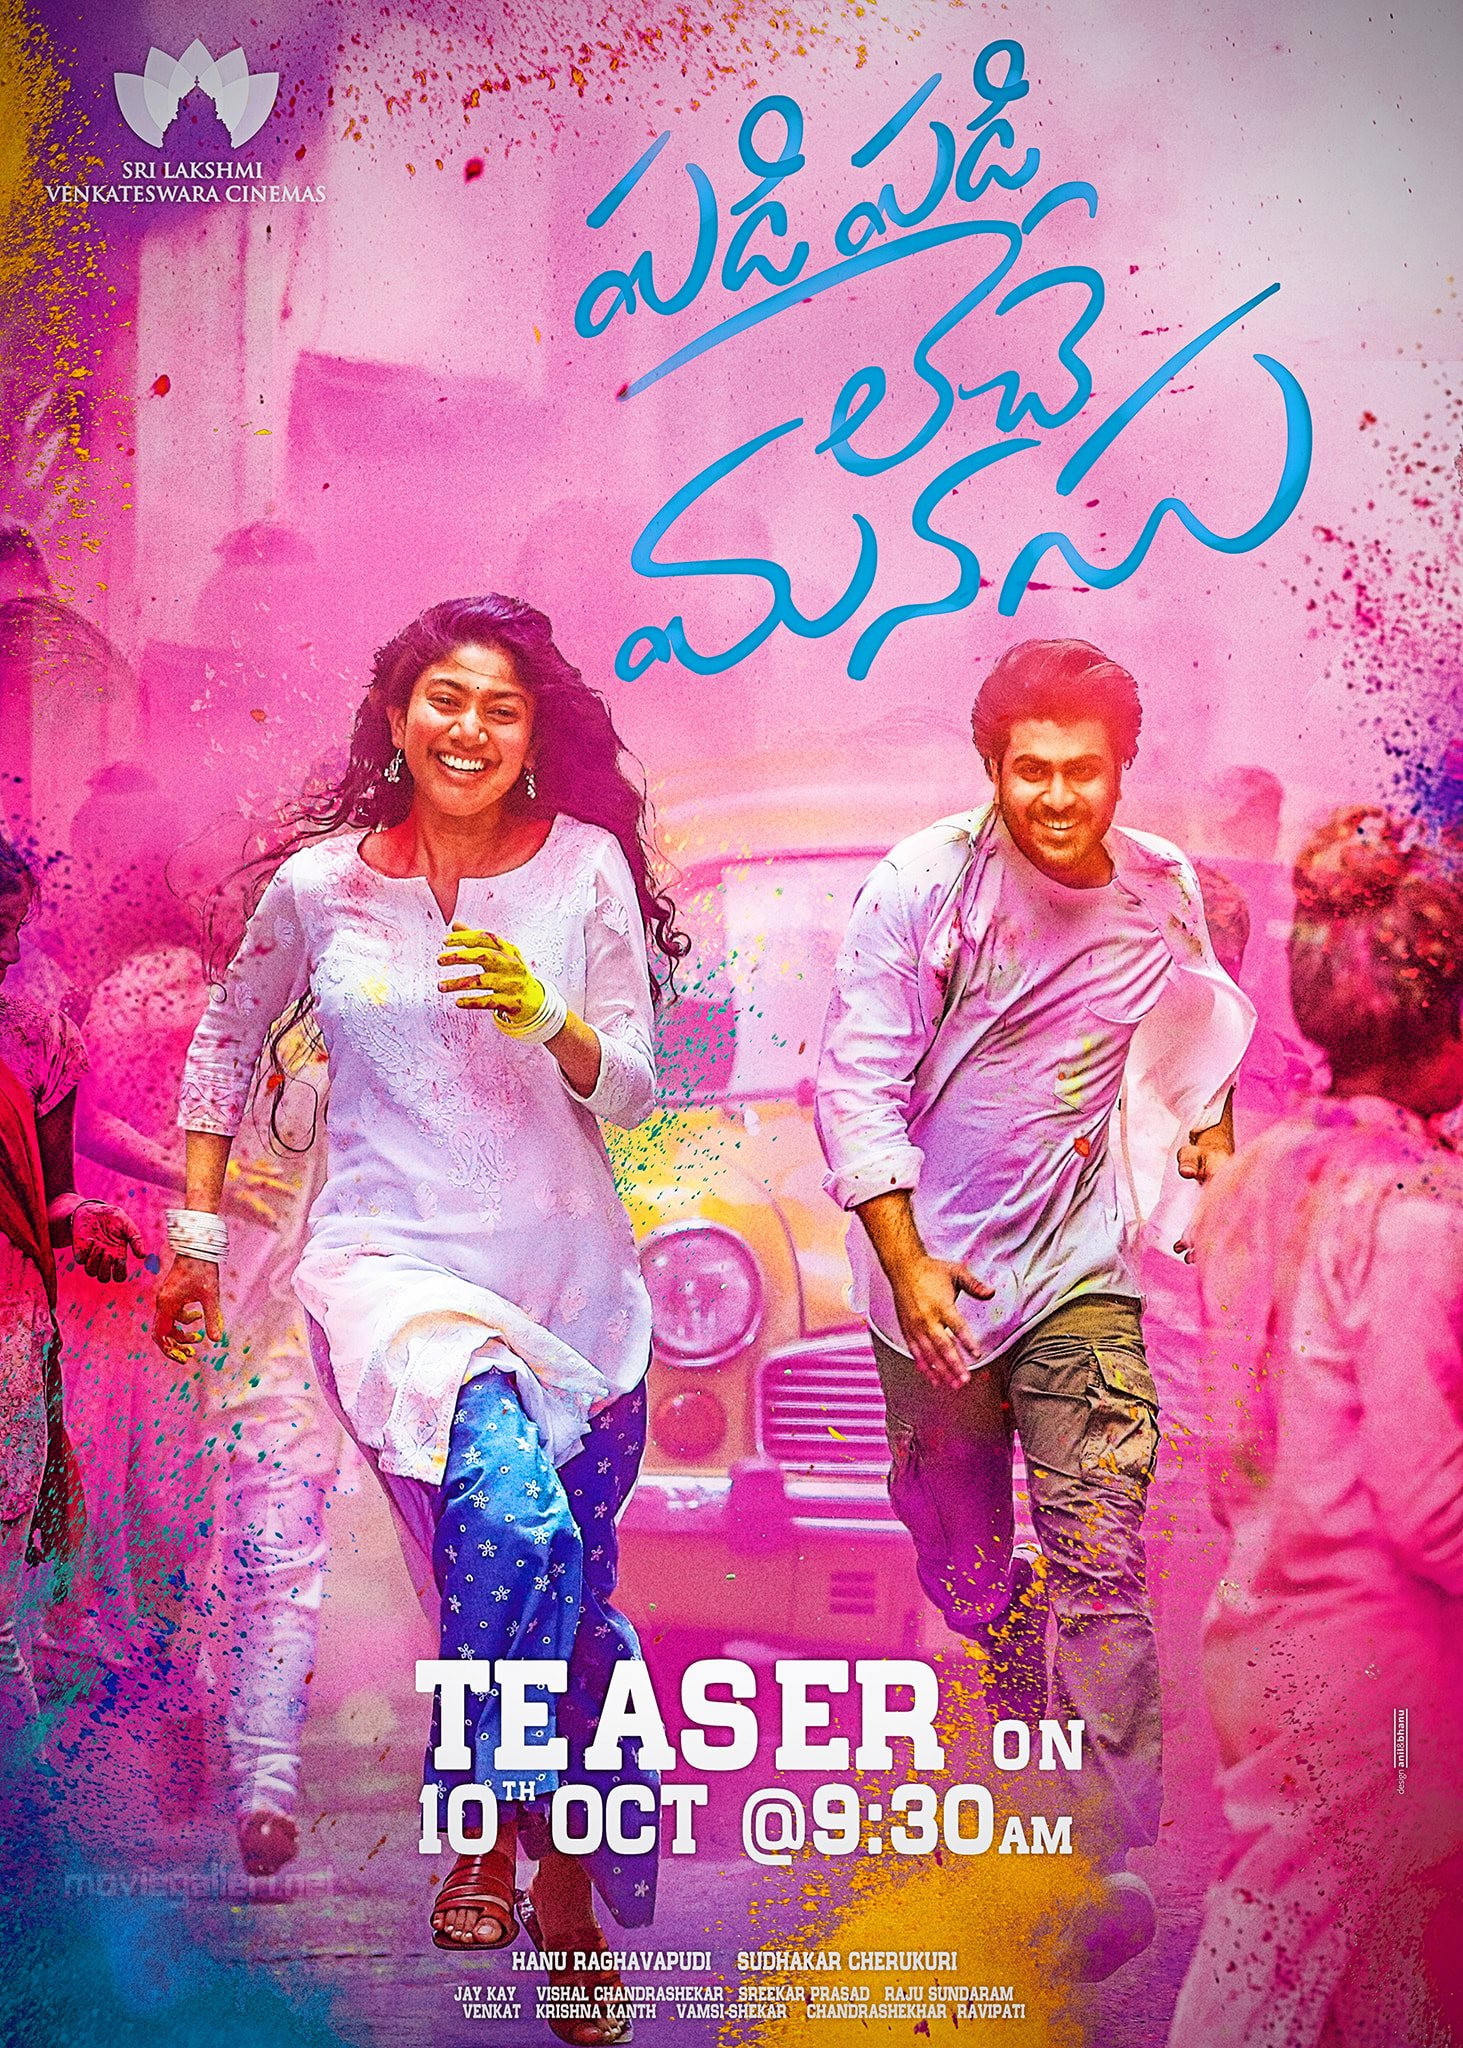 Sai Pallavi Sharwanand Padi Padi Leche Manasu Teaser on October 10th Poster HD